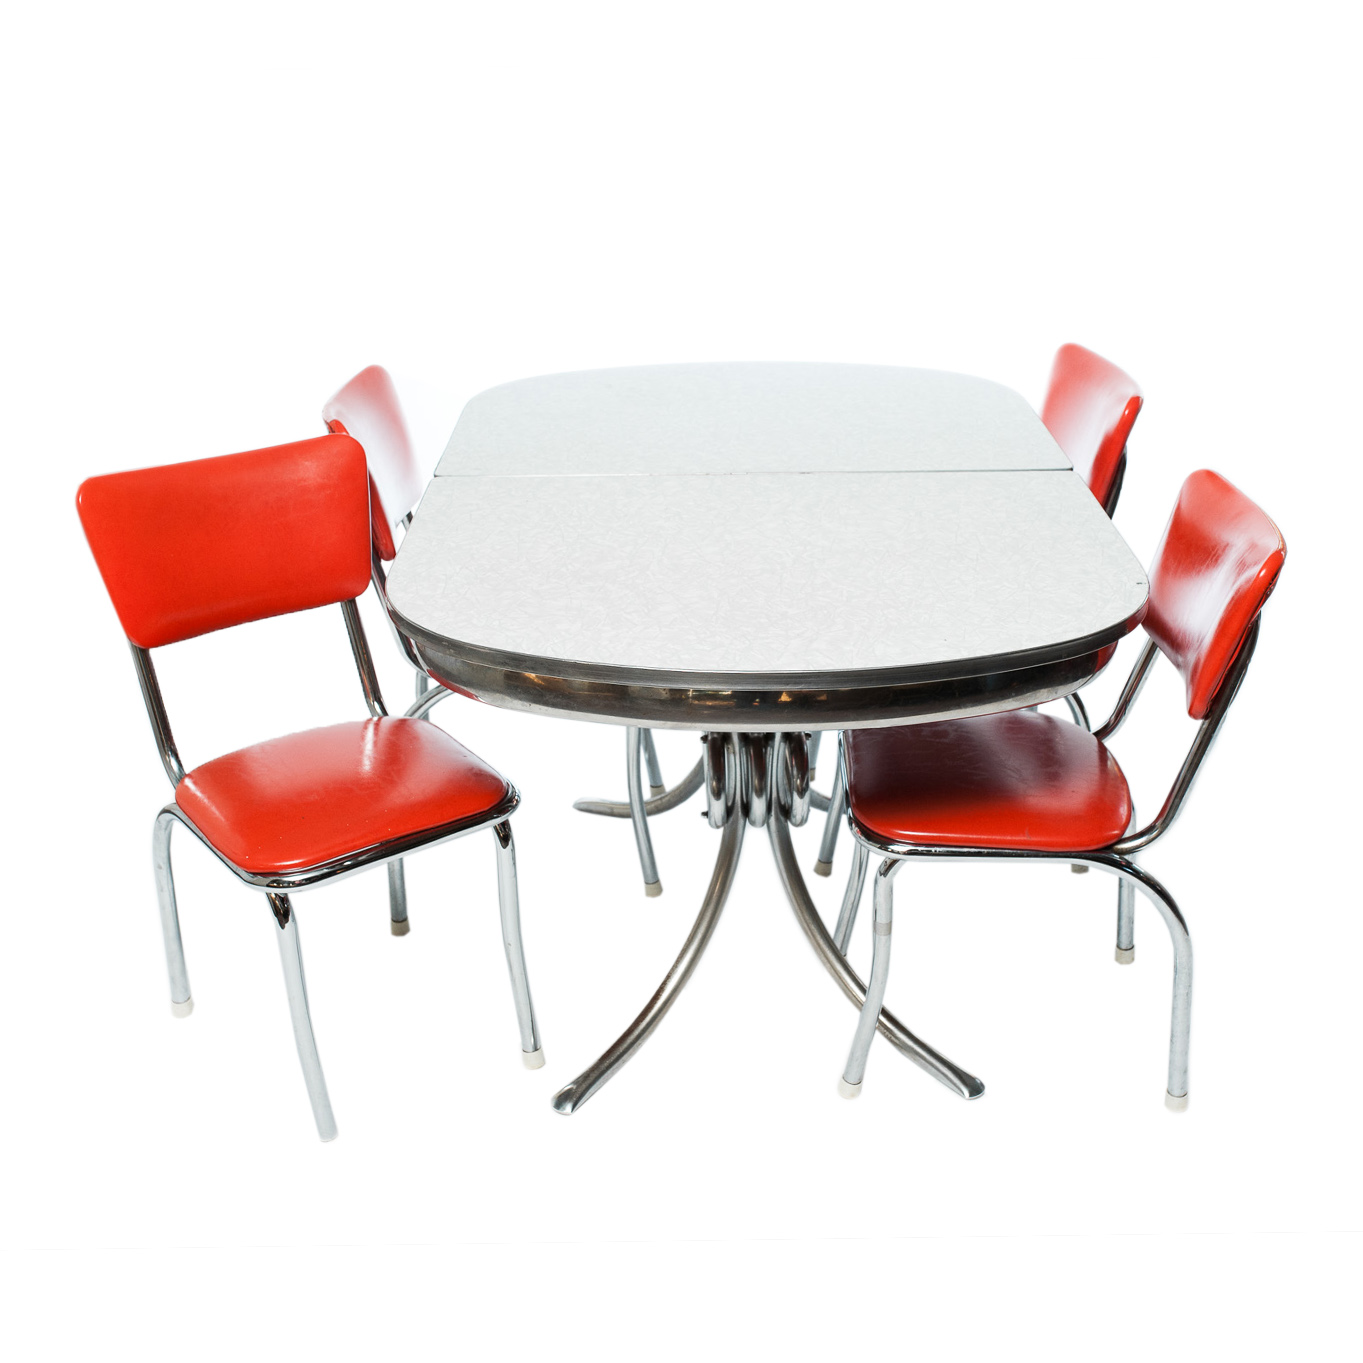 Formica Table & Chairs